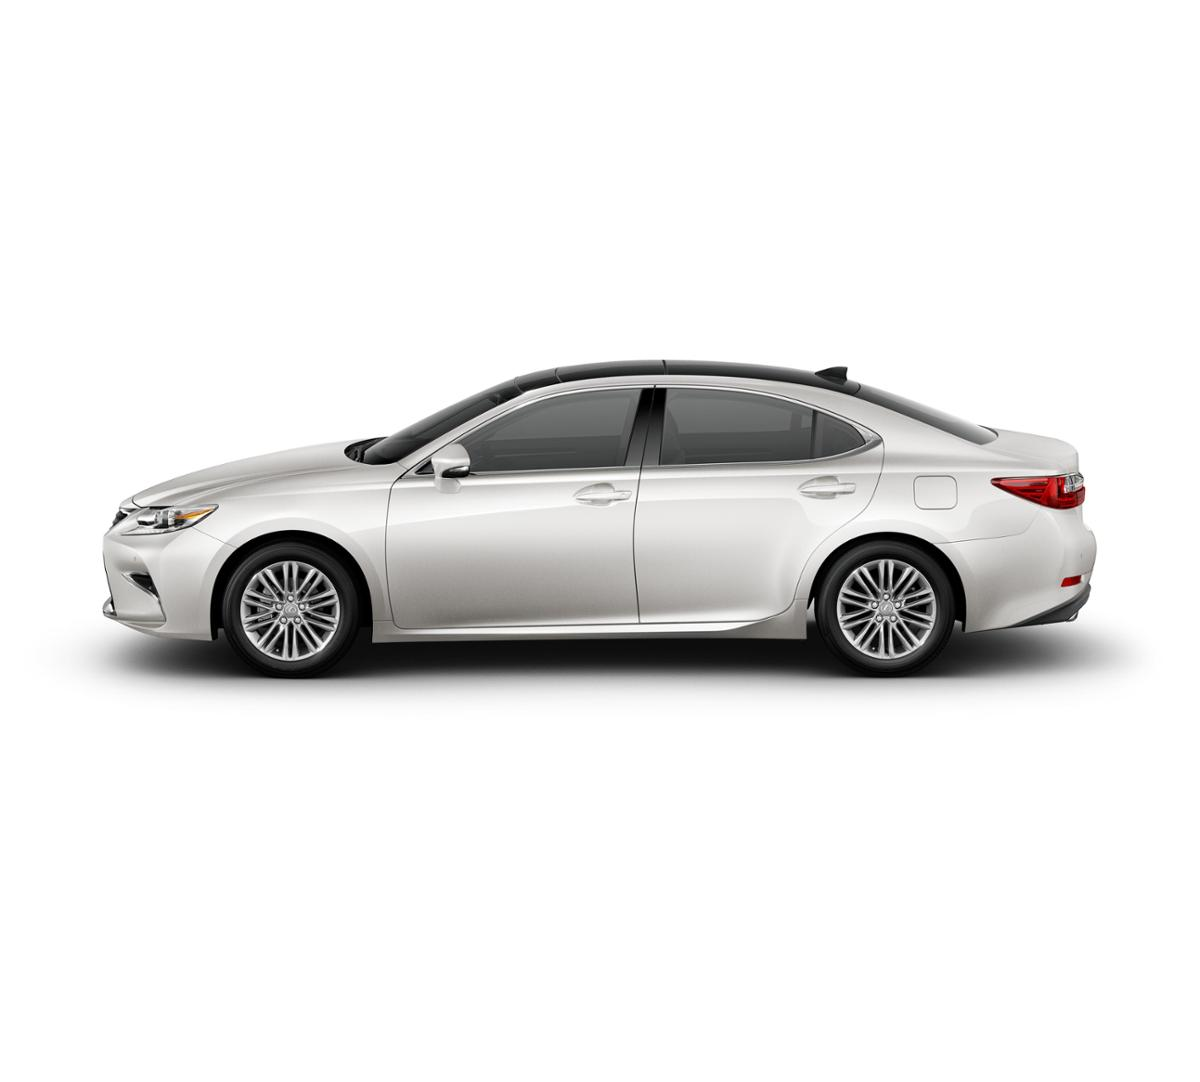 2018 Lexus ES 350 Vehicle Photo in El Monte, CA 91731